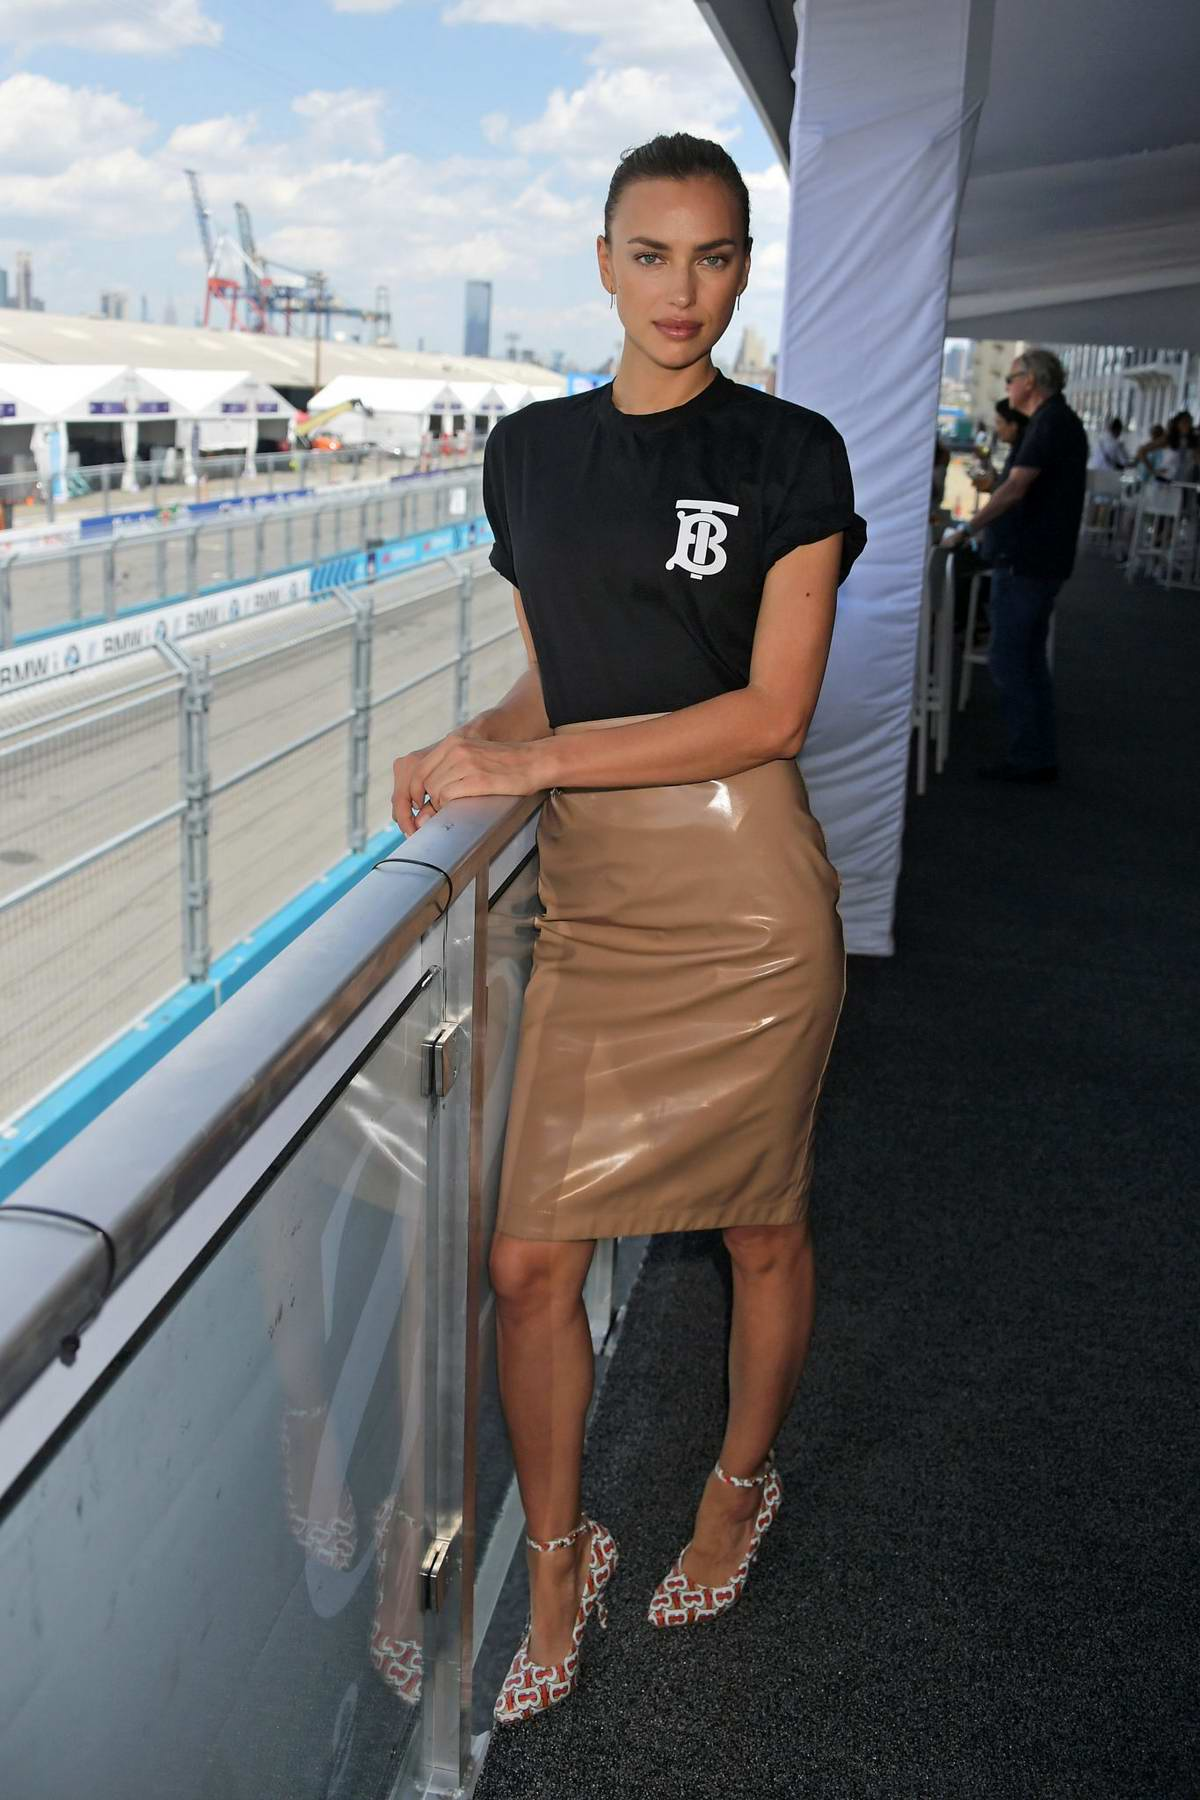 Irina Shayk attends the 2019 New York E-Prix in New York City